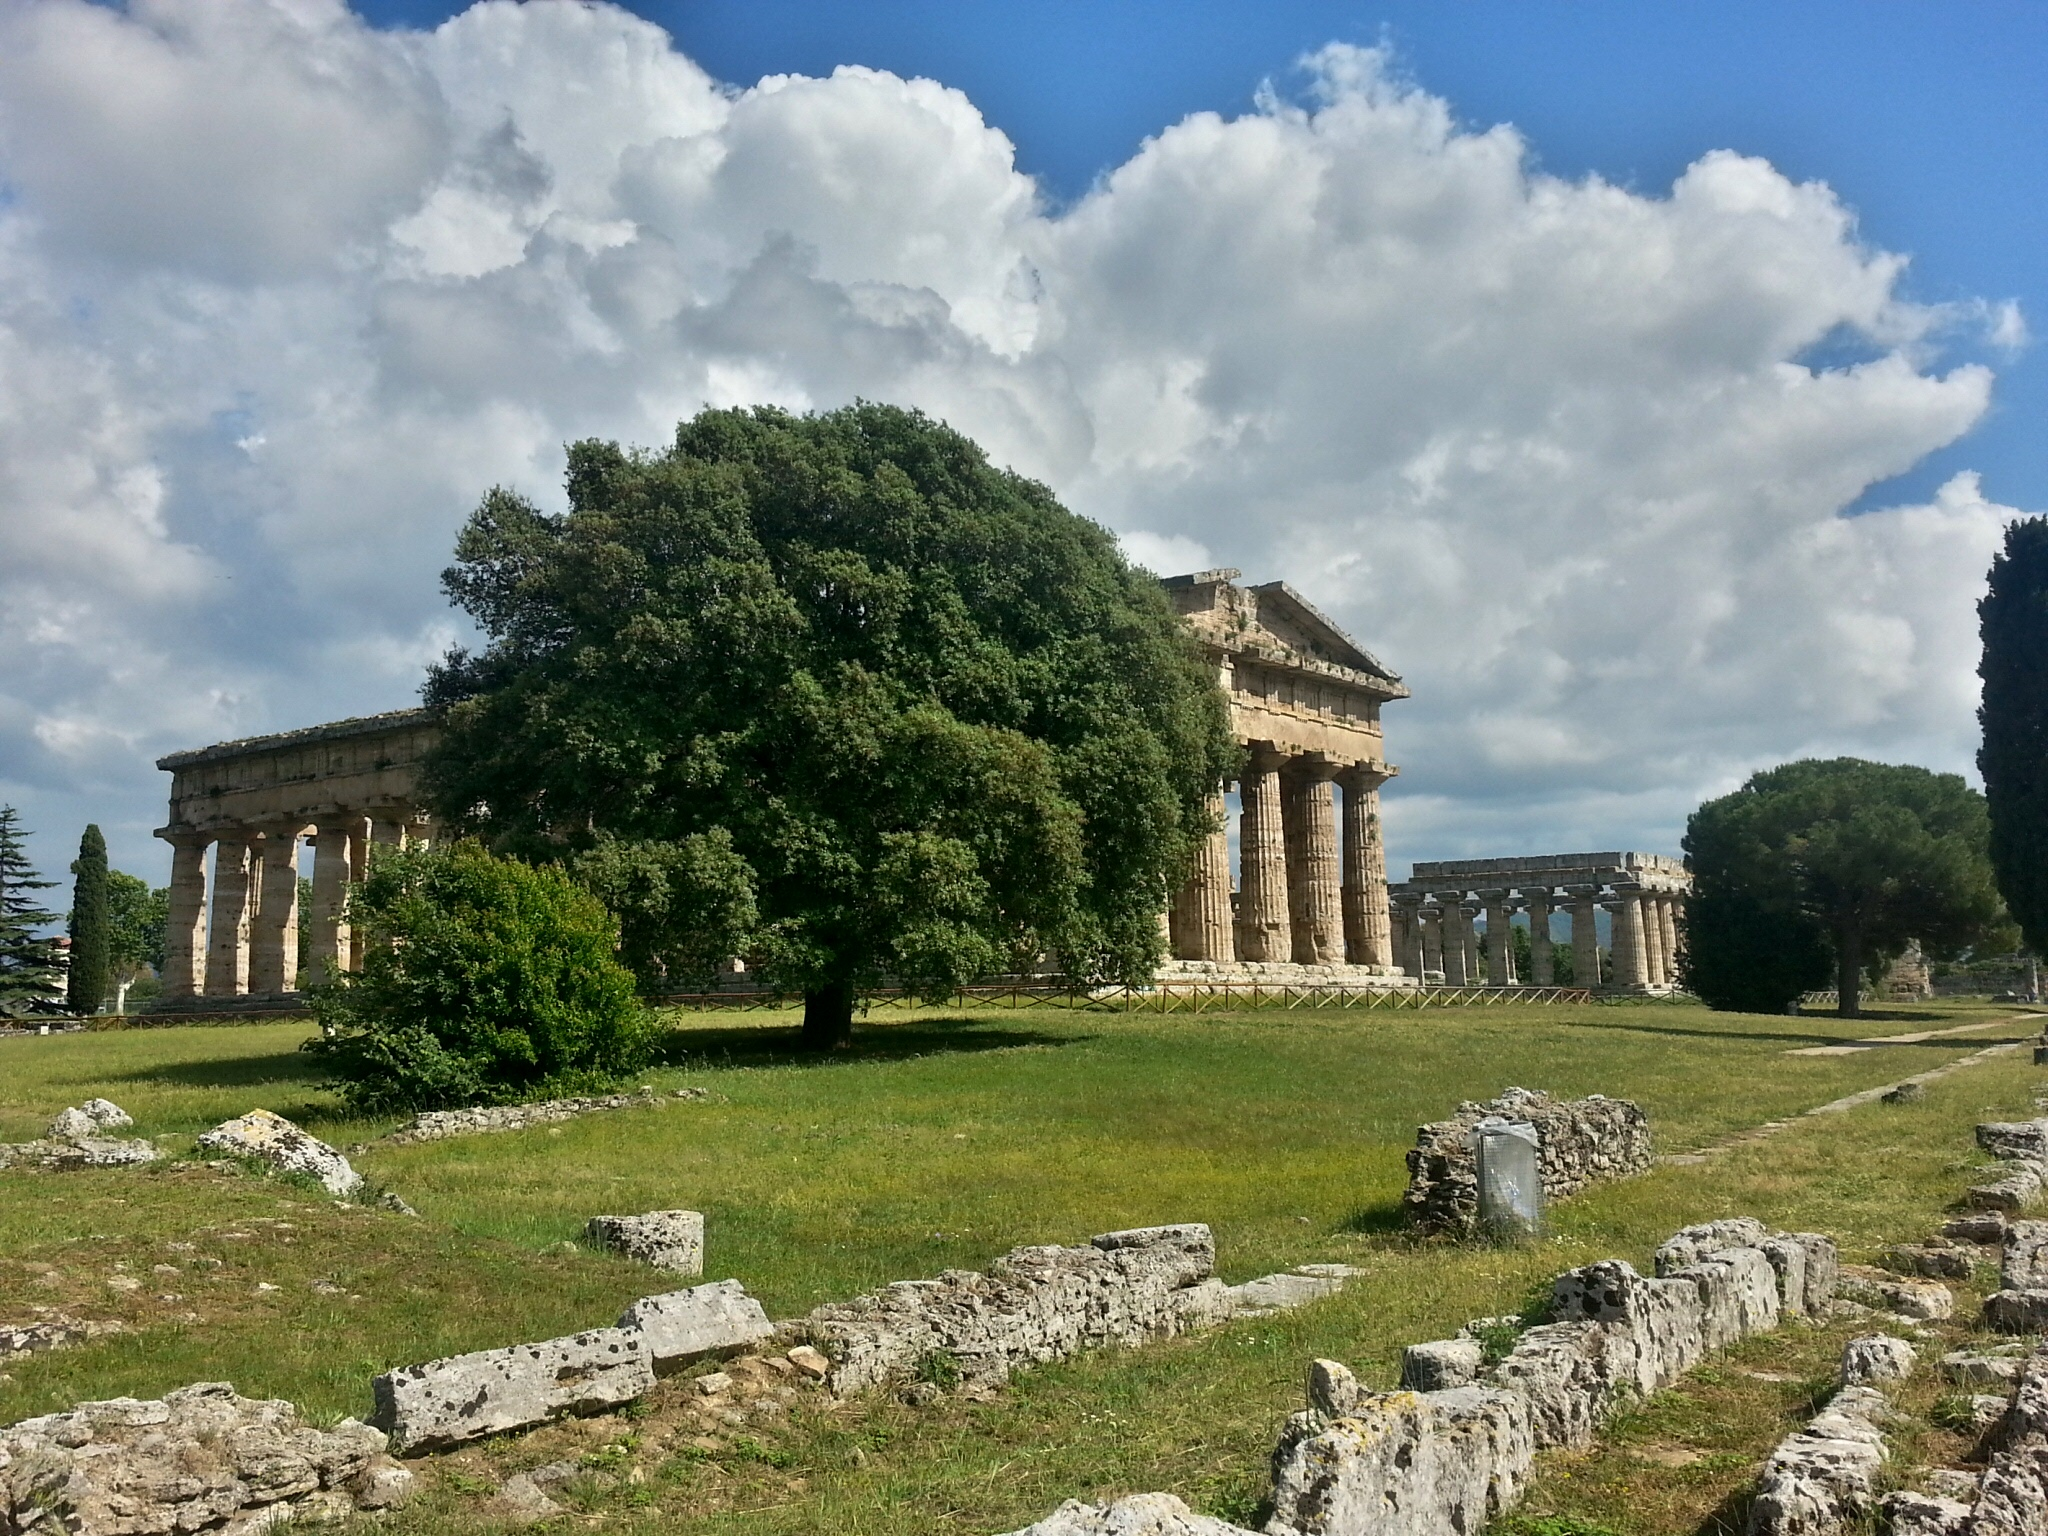 Greek Gods of Paestum